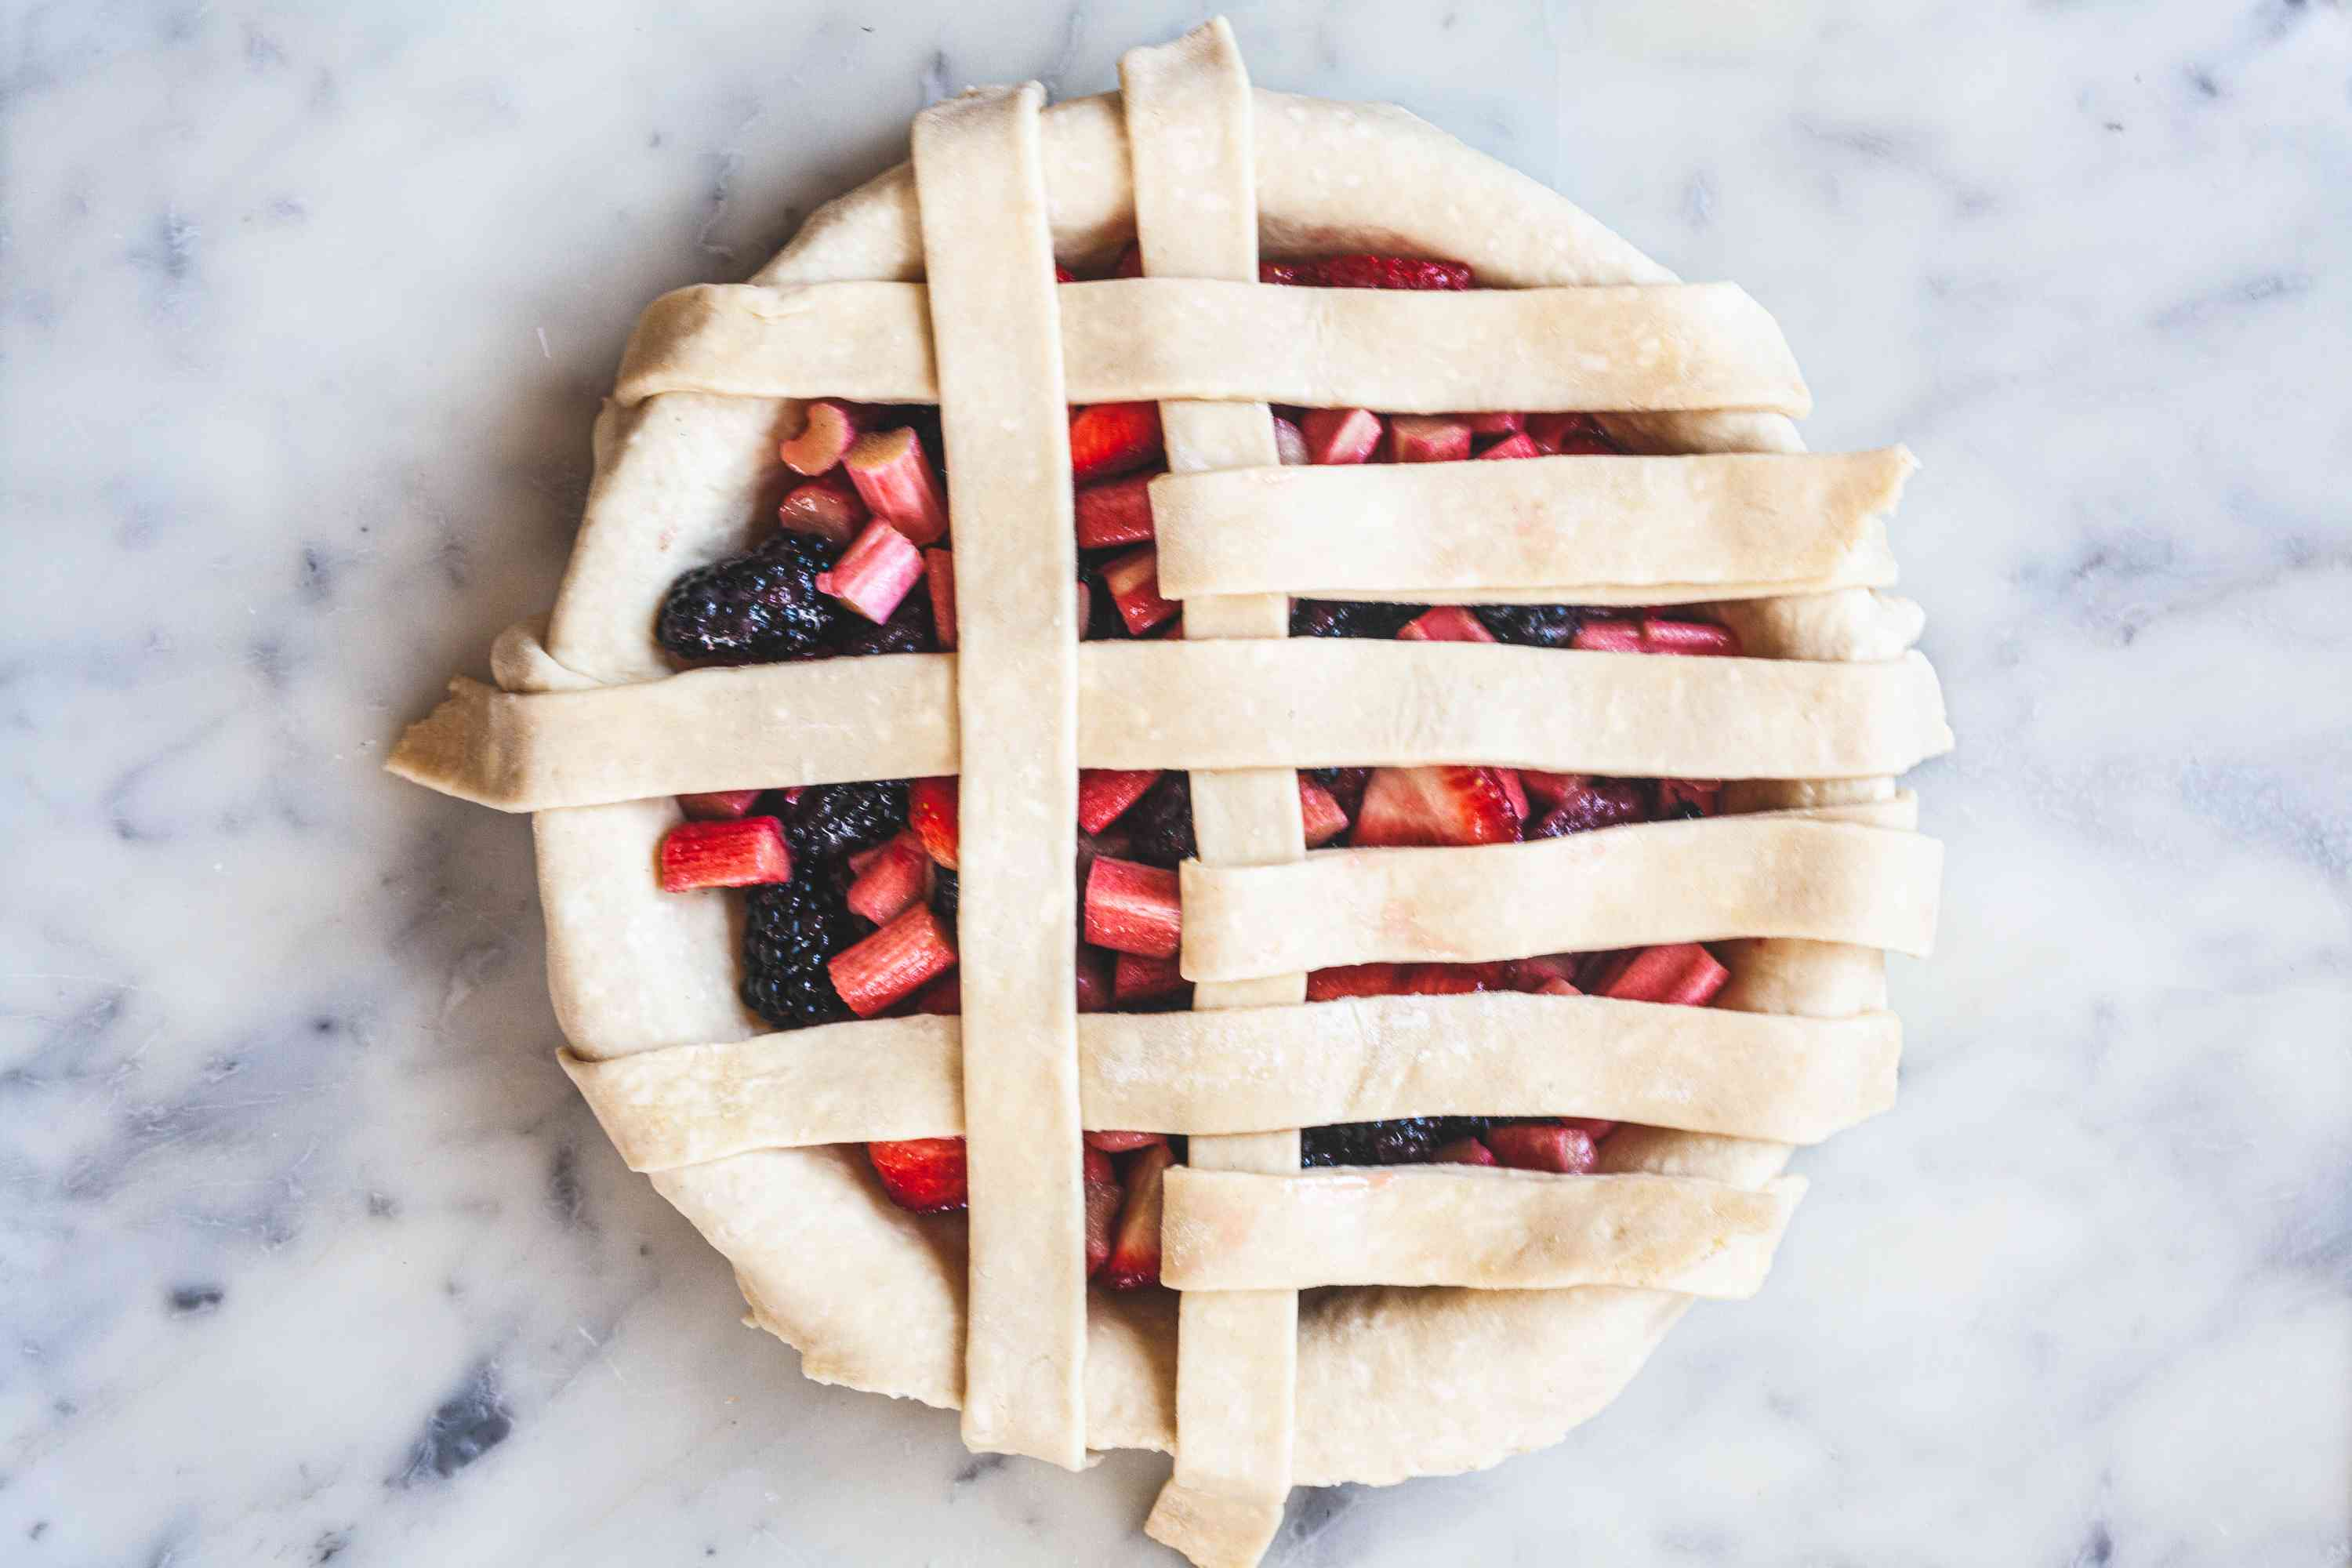 aying strips vertically to show how to make a lattice crust.